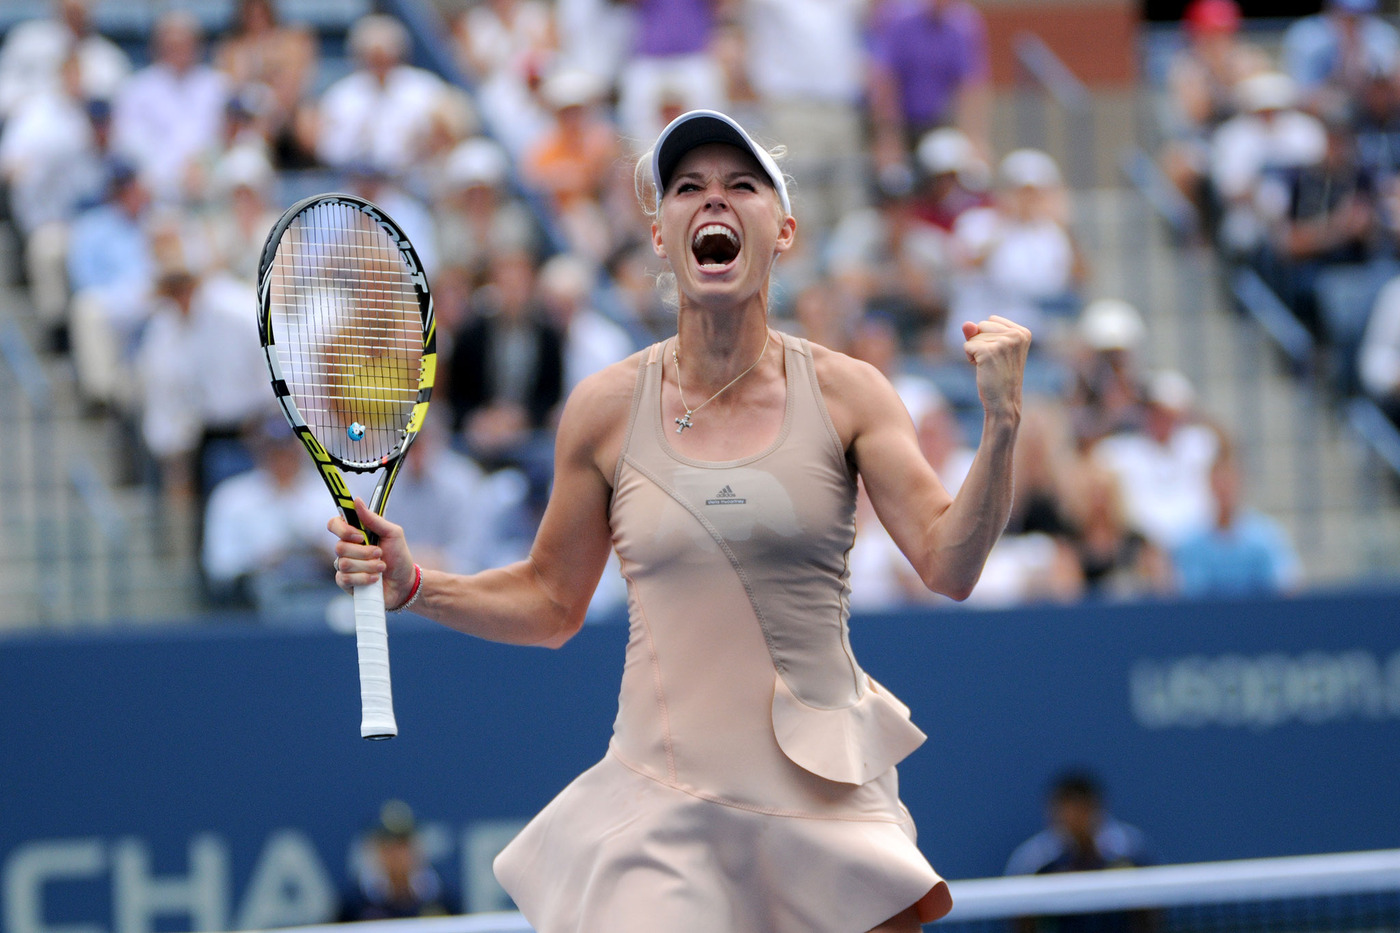 Tenth seed Caroline Wozniacki, the 2009 runner-up, defeats No. 5 Maria Sharapova in the fourth round 6-4, 2-6, 6-2. - Photo Credit: Mike Lawrence/usopen.org